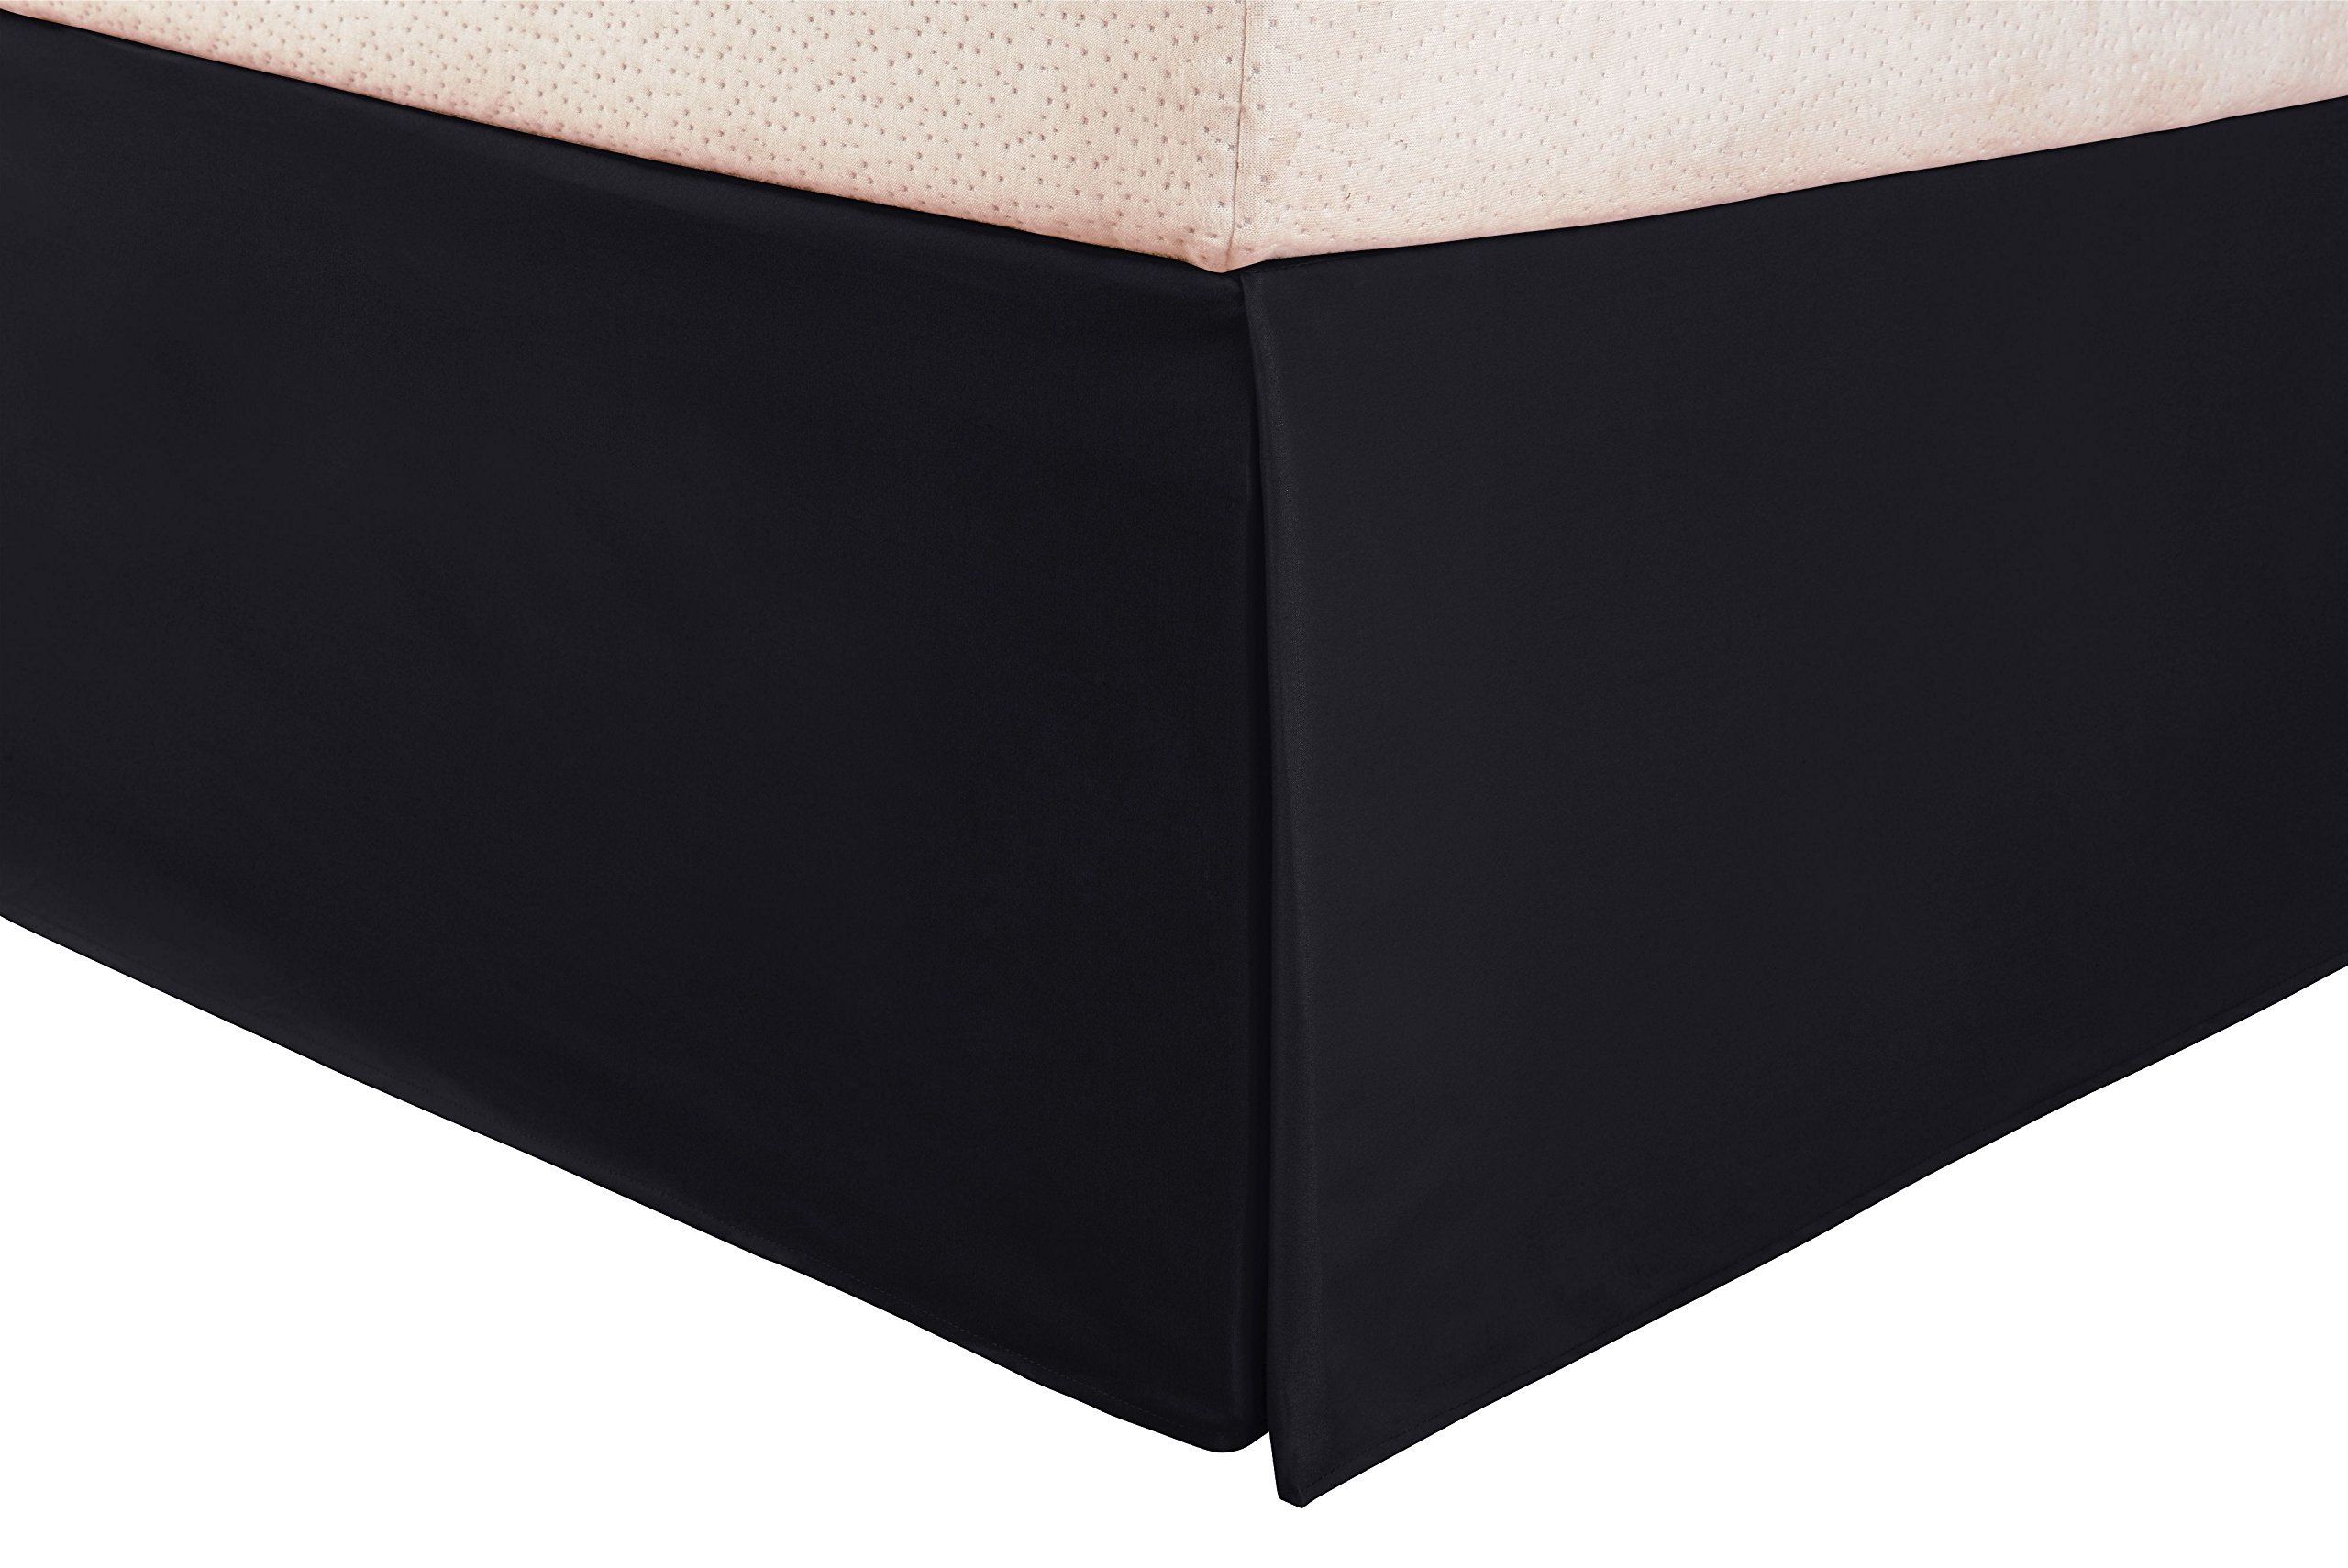 SRP Bedding Real 350 Thread Count Split Corner Bed Skirt/Dust Ruffle Queen Size Solid Black 16'' inches Drop Egyptian Cotton Quality Wrinkle & Fade Resistant